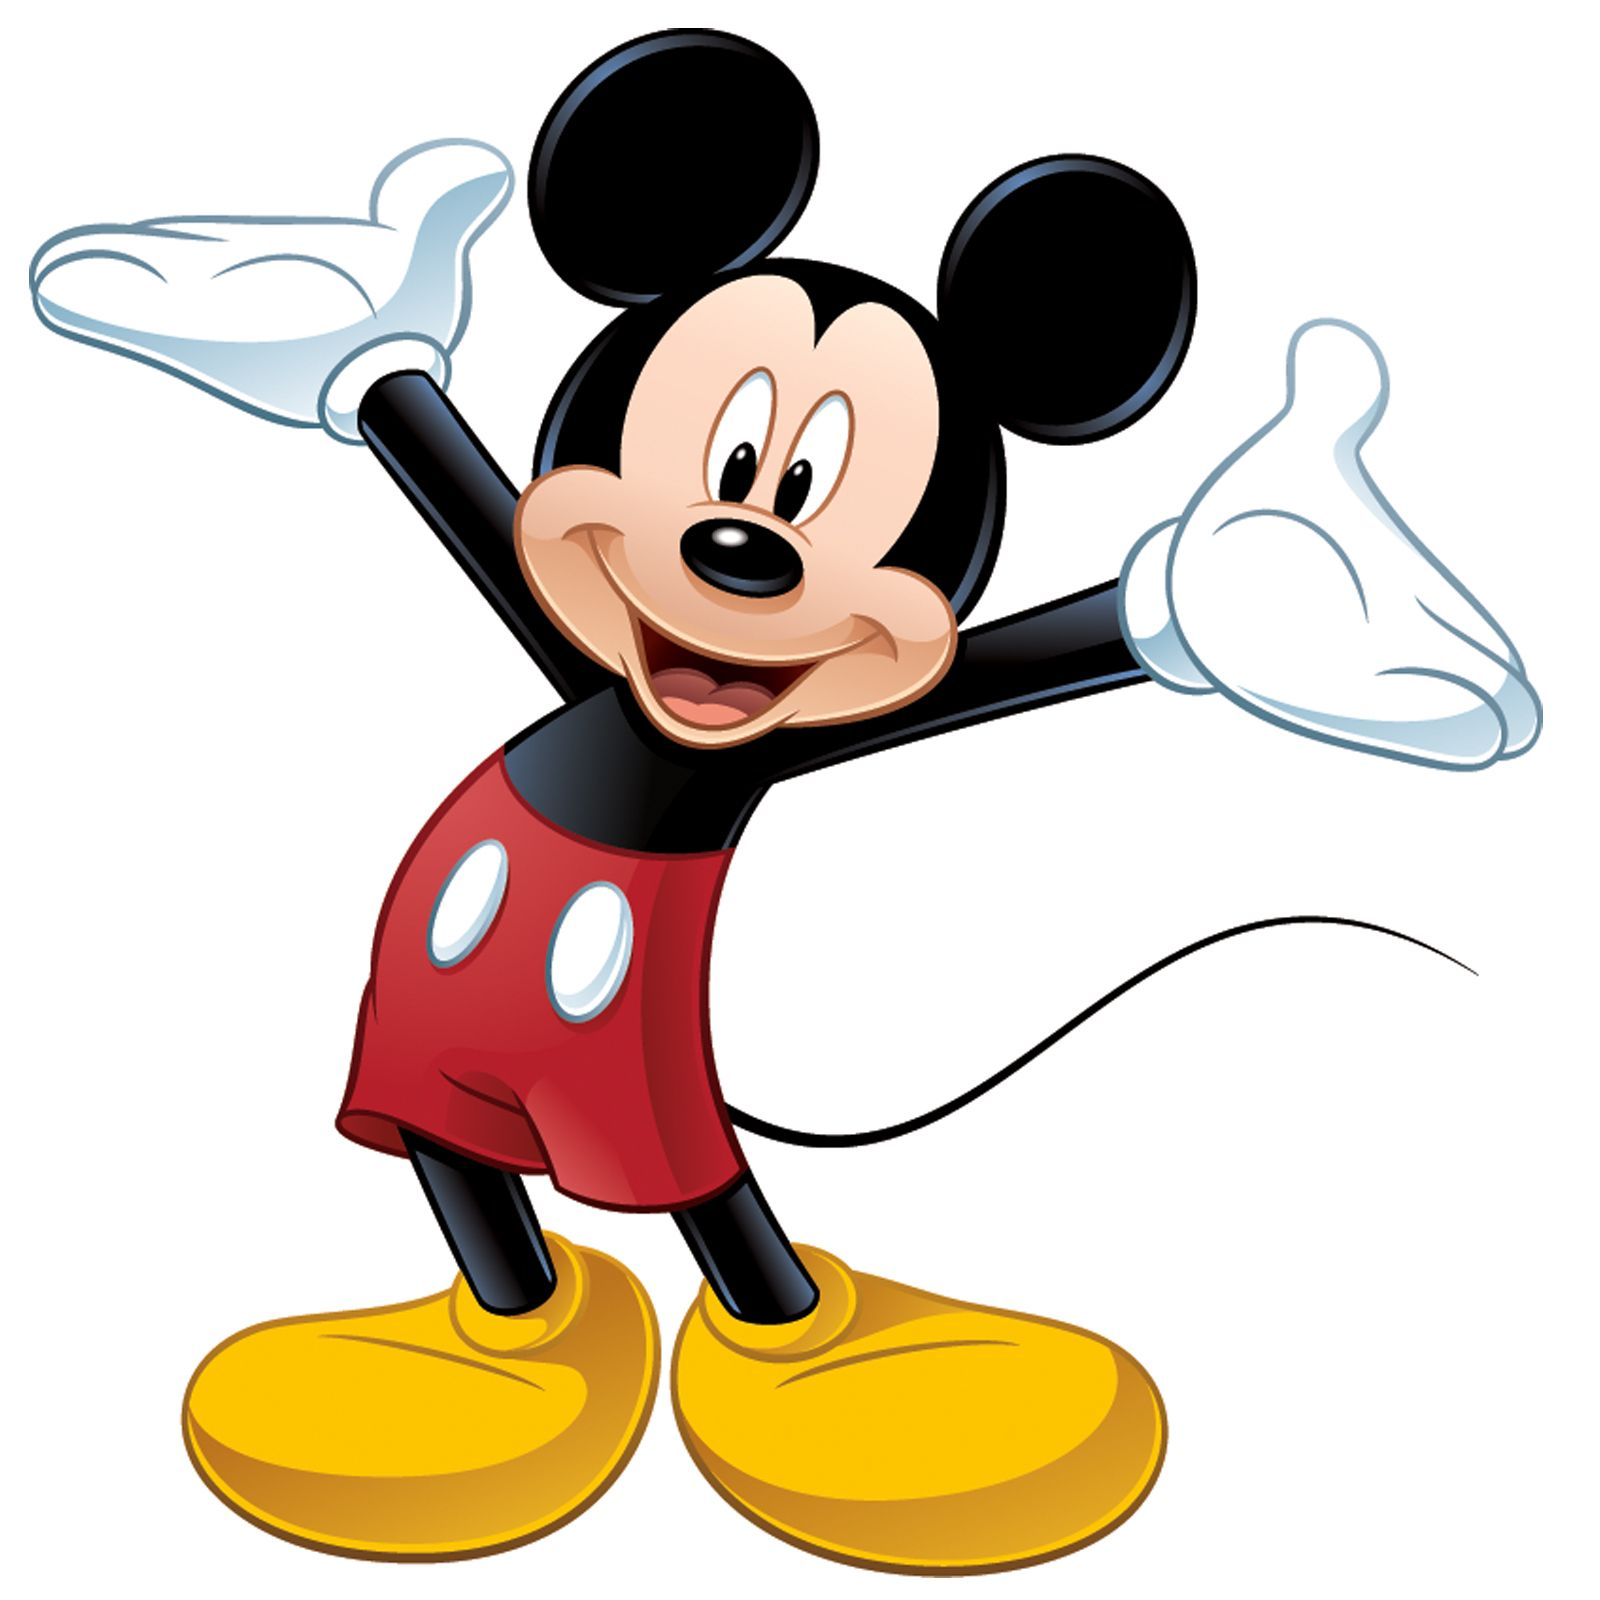 Disney Mickey Mouse Giant Wall Decal.